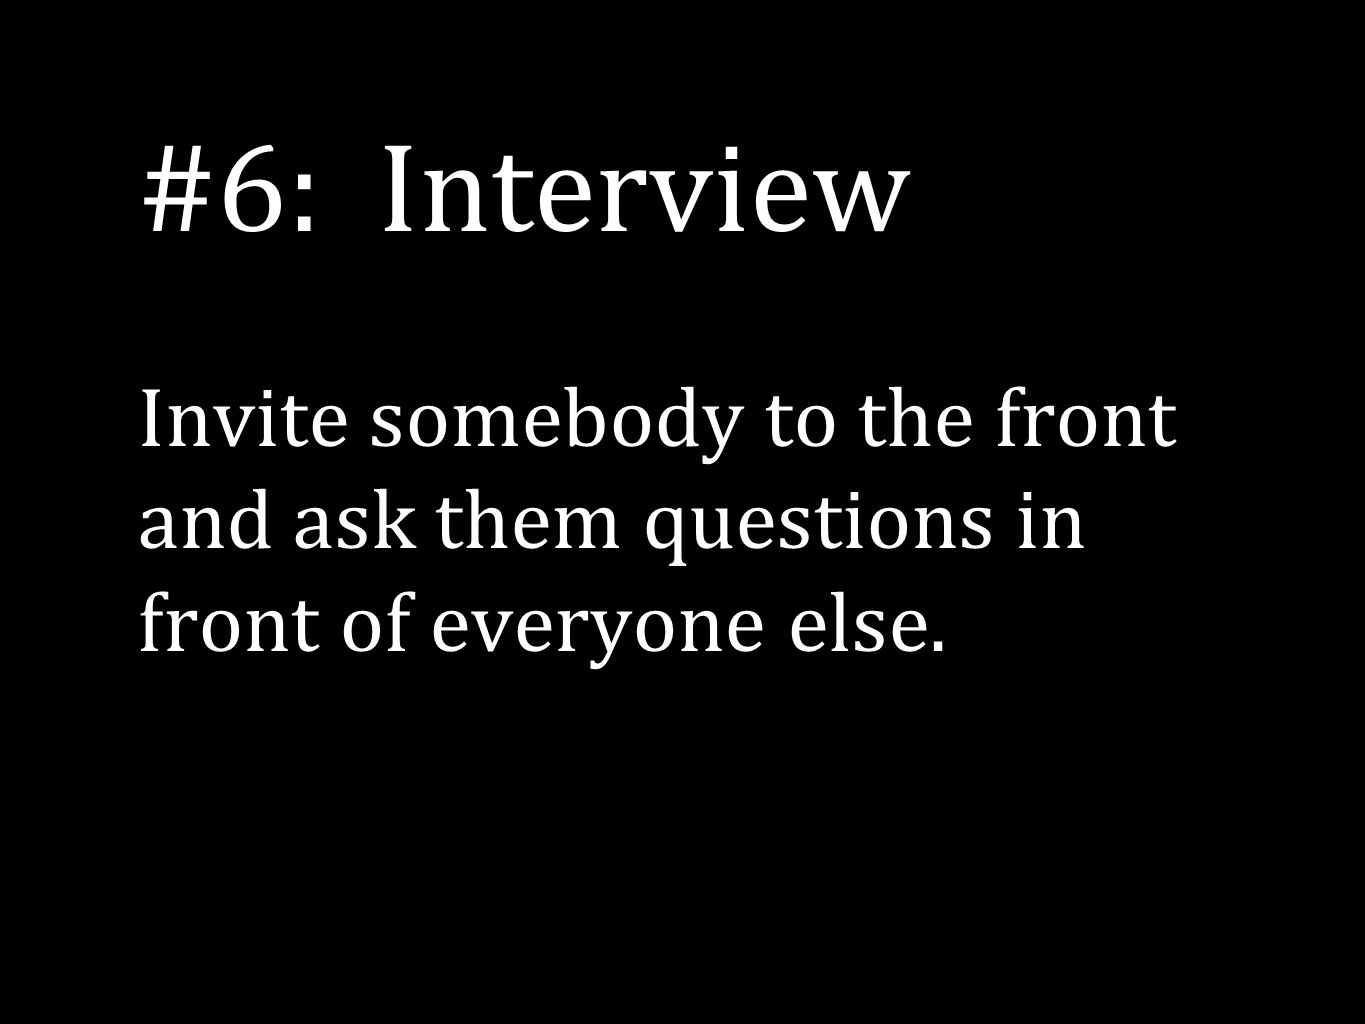 #6: Interview Invite somebody to the front and ask them questions in front of everyone else.